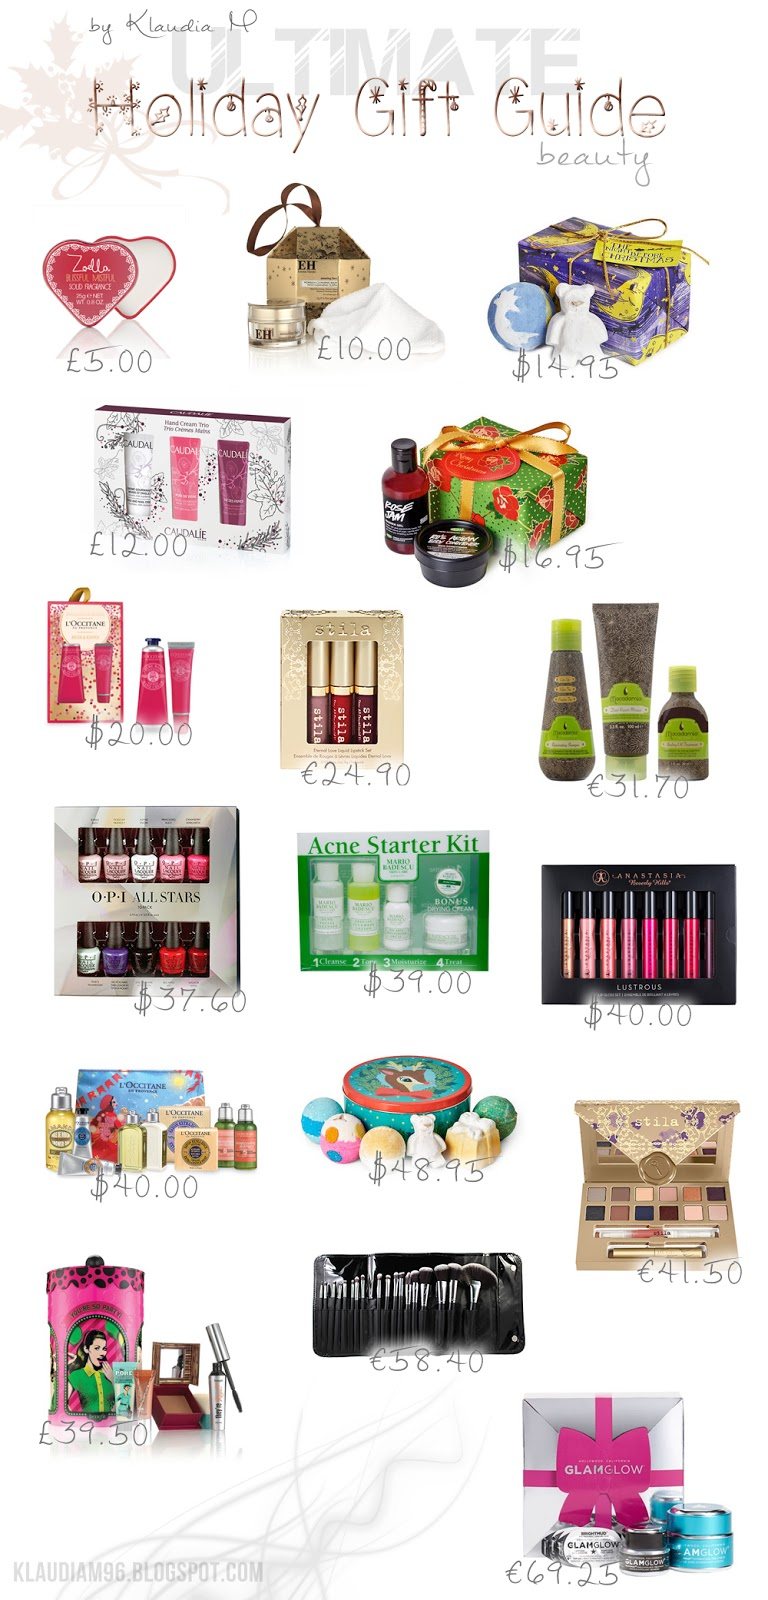 holiday gift guide beauty makeup 2015